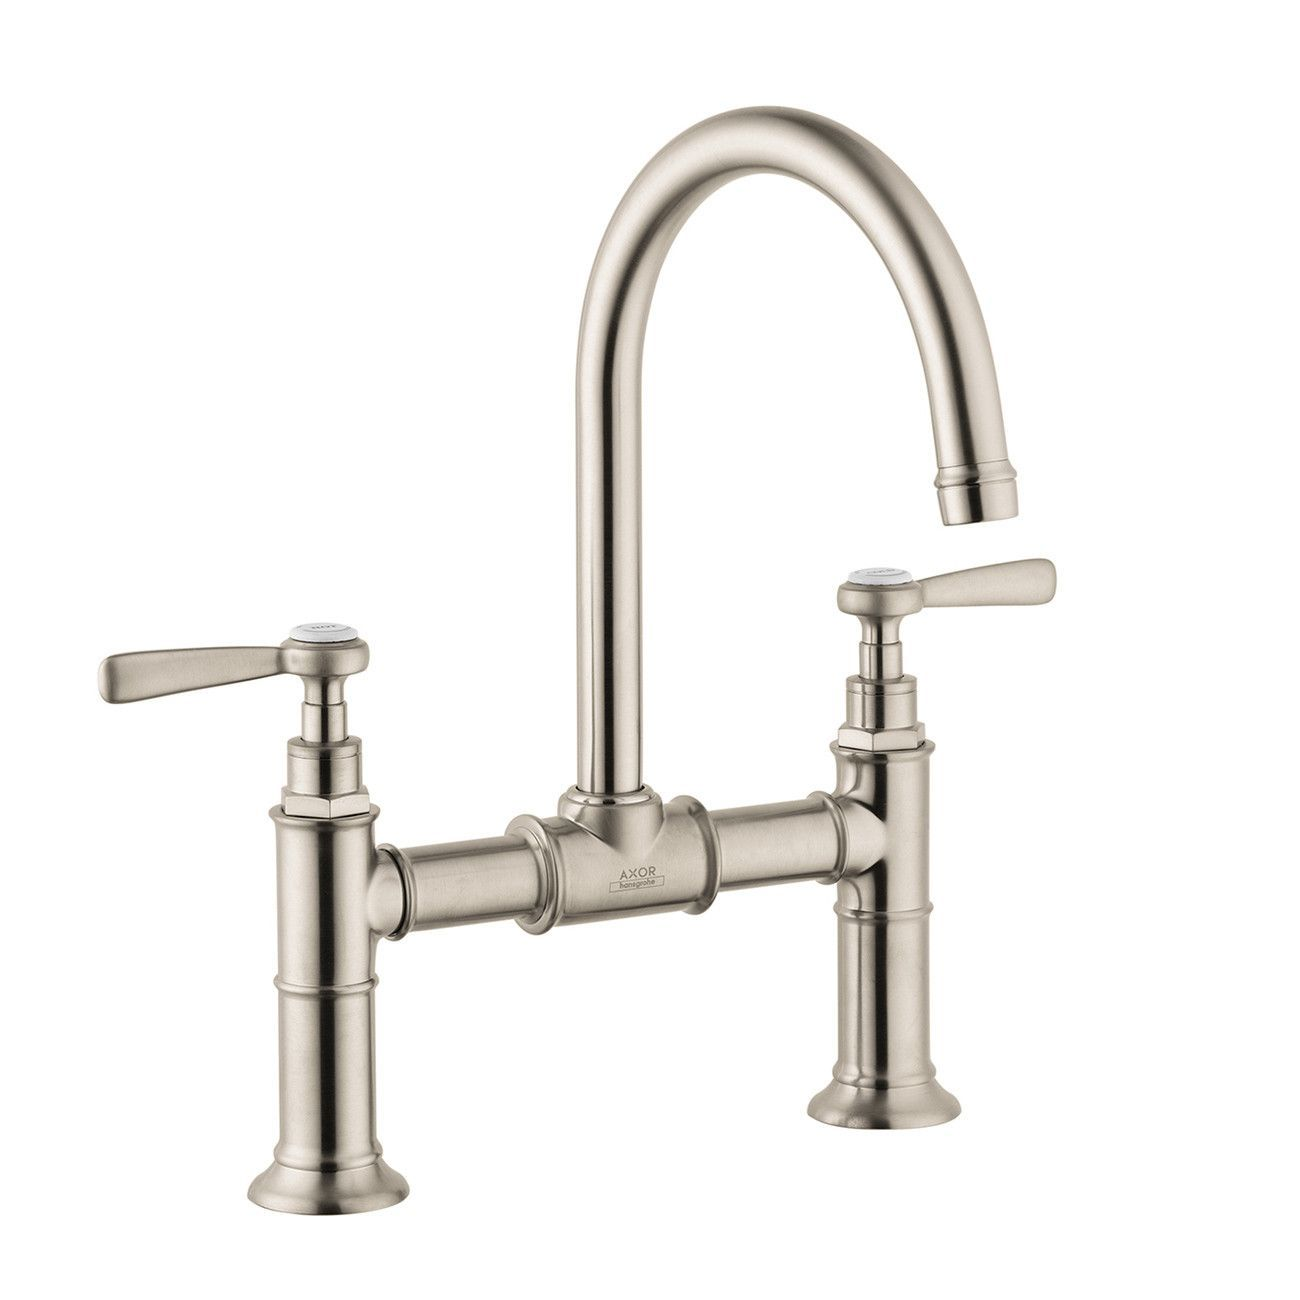 Hansgrohe Axor 16511001 Chrome Montreux Bathroom Faucet Widespread